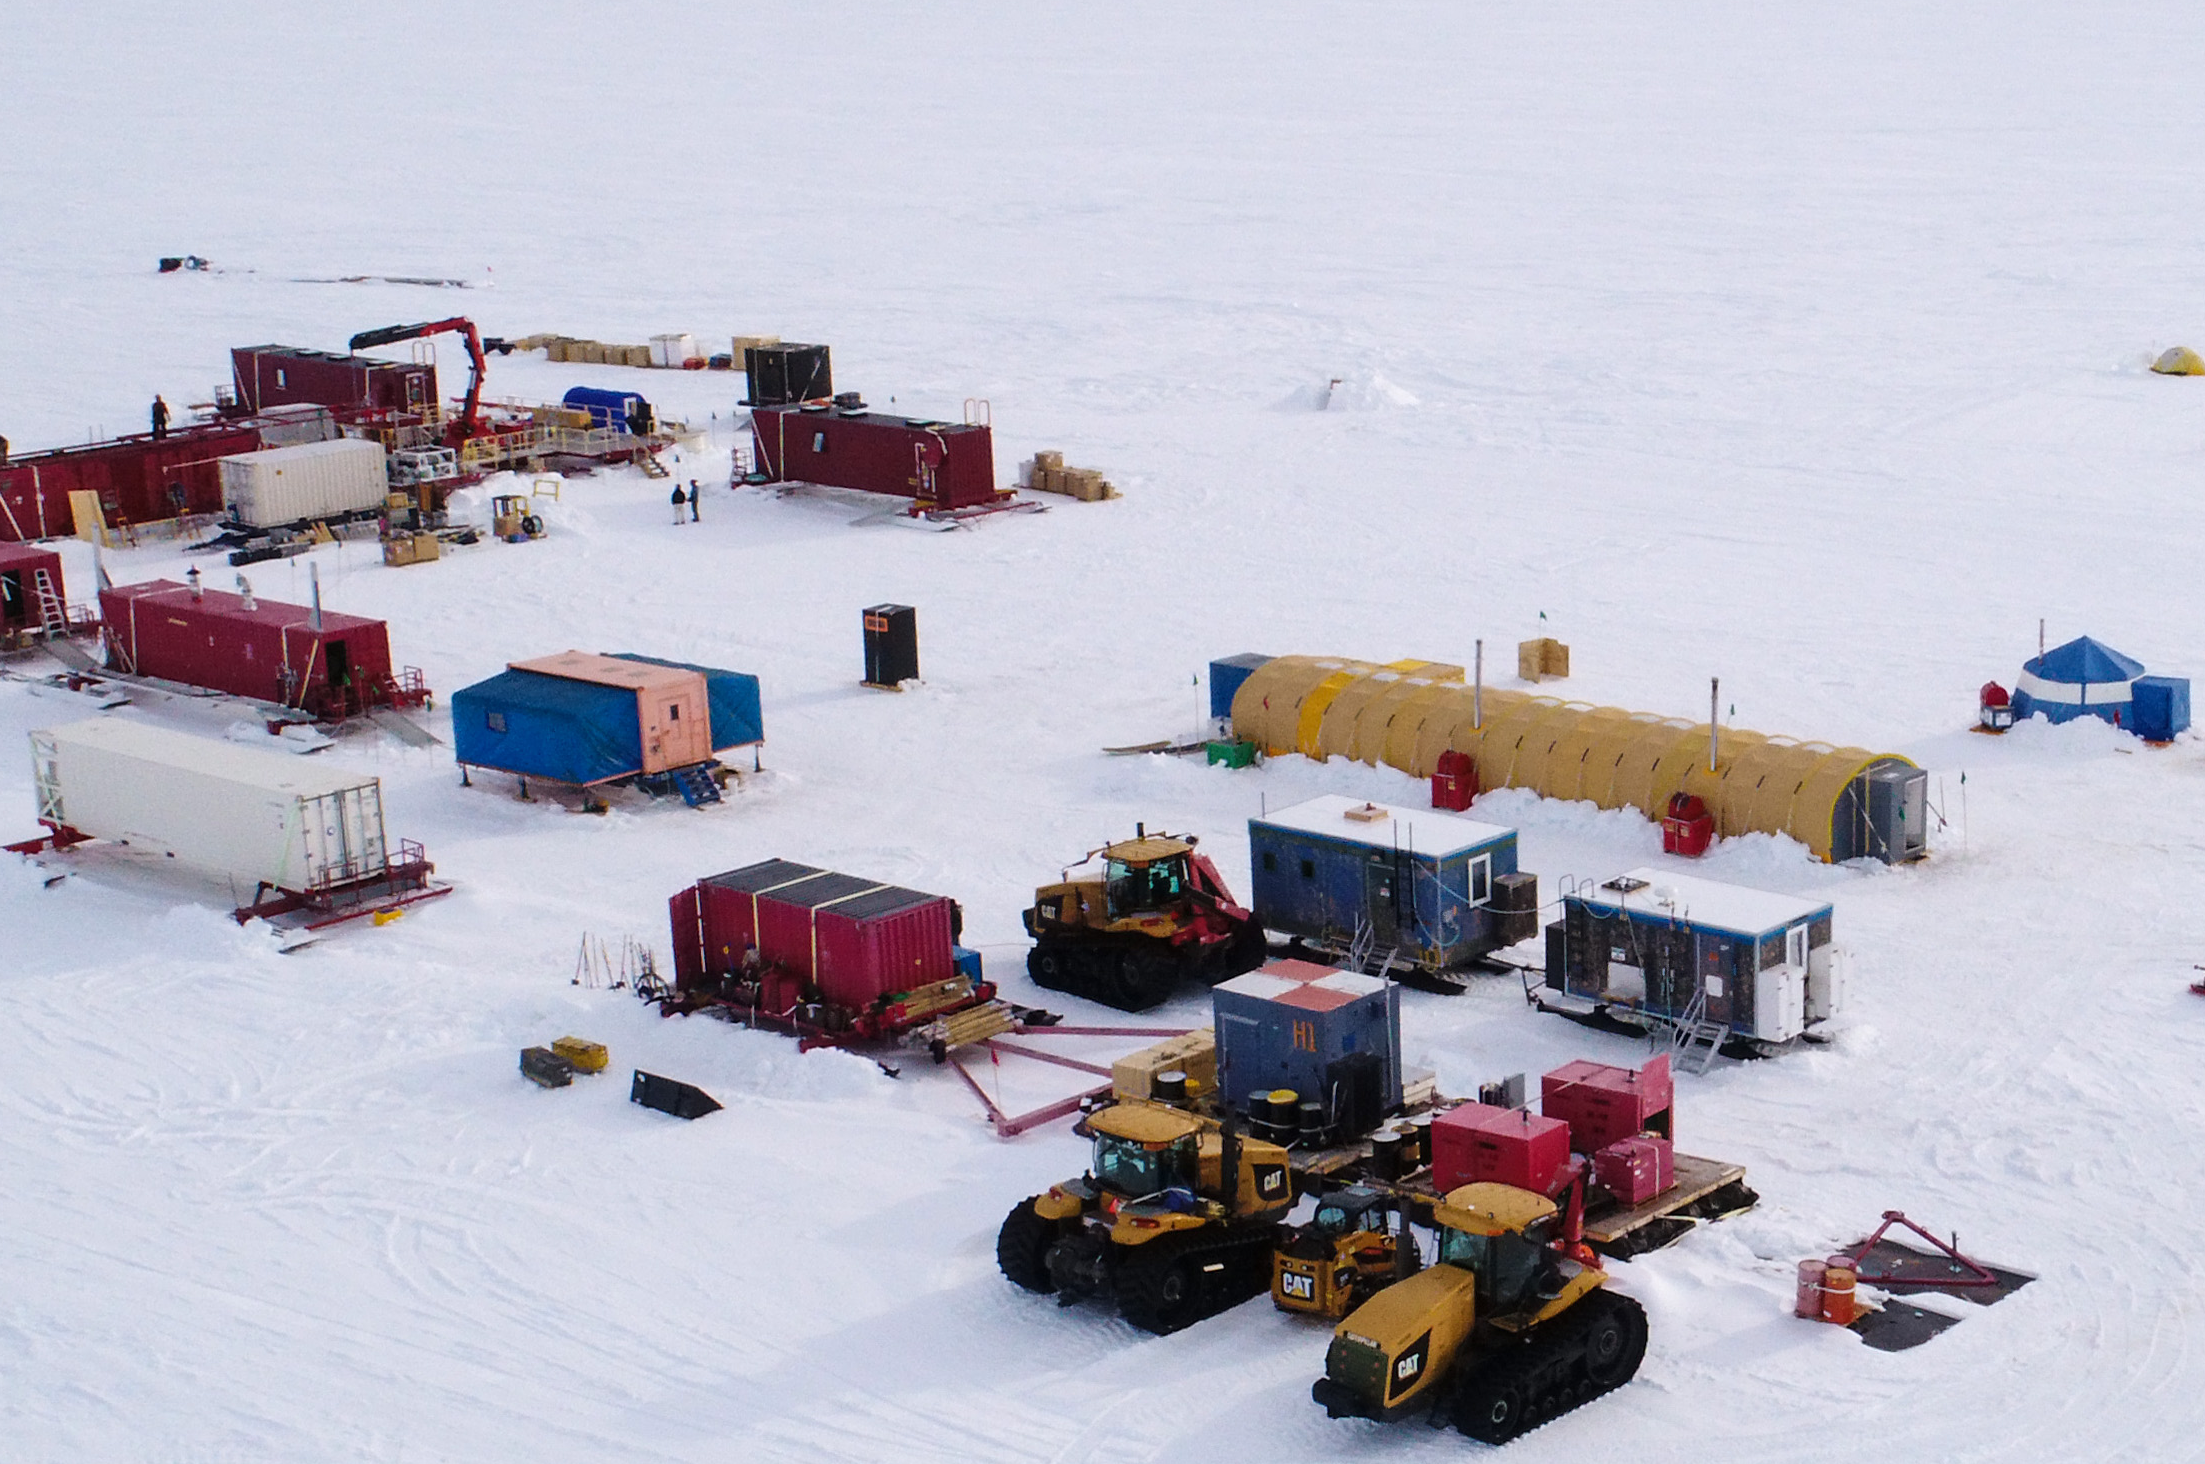 Science Team Begins Field Work and Geophysics Team Completes Research at Whillans Subglacial Lake